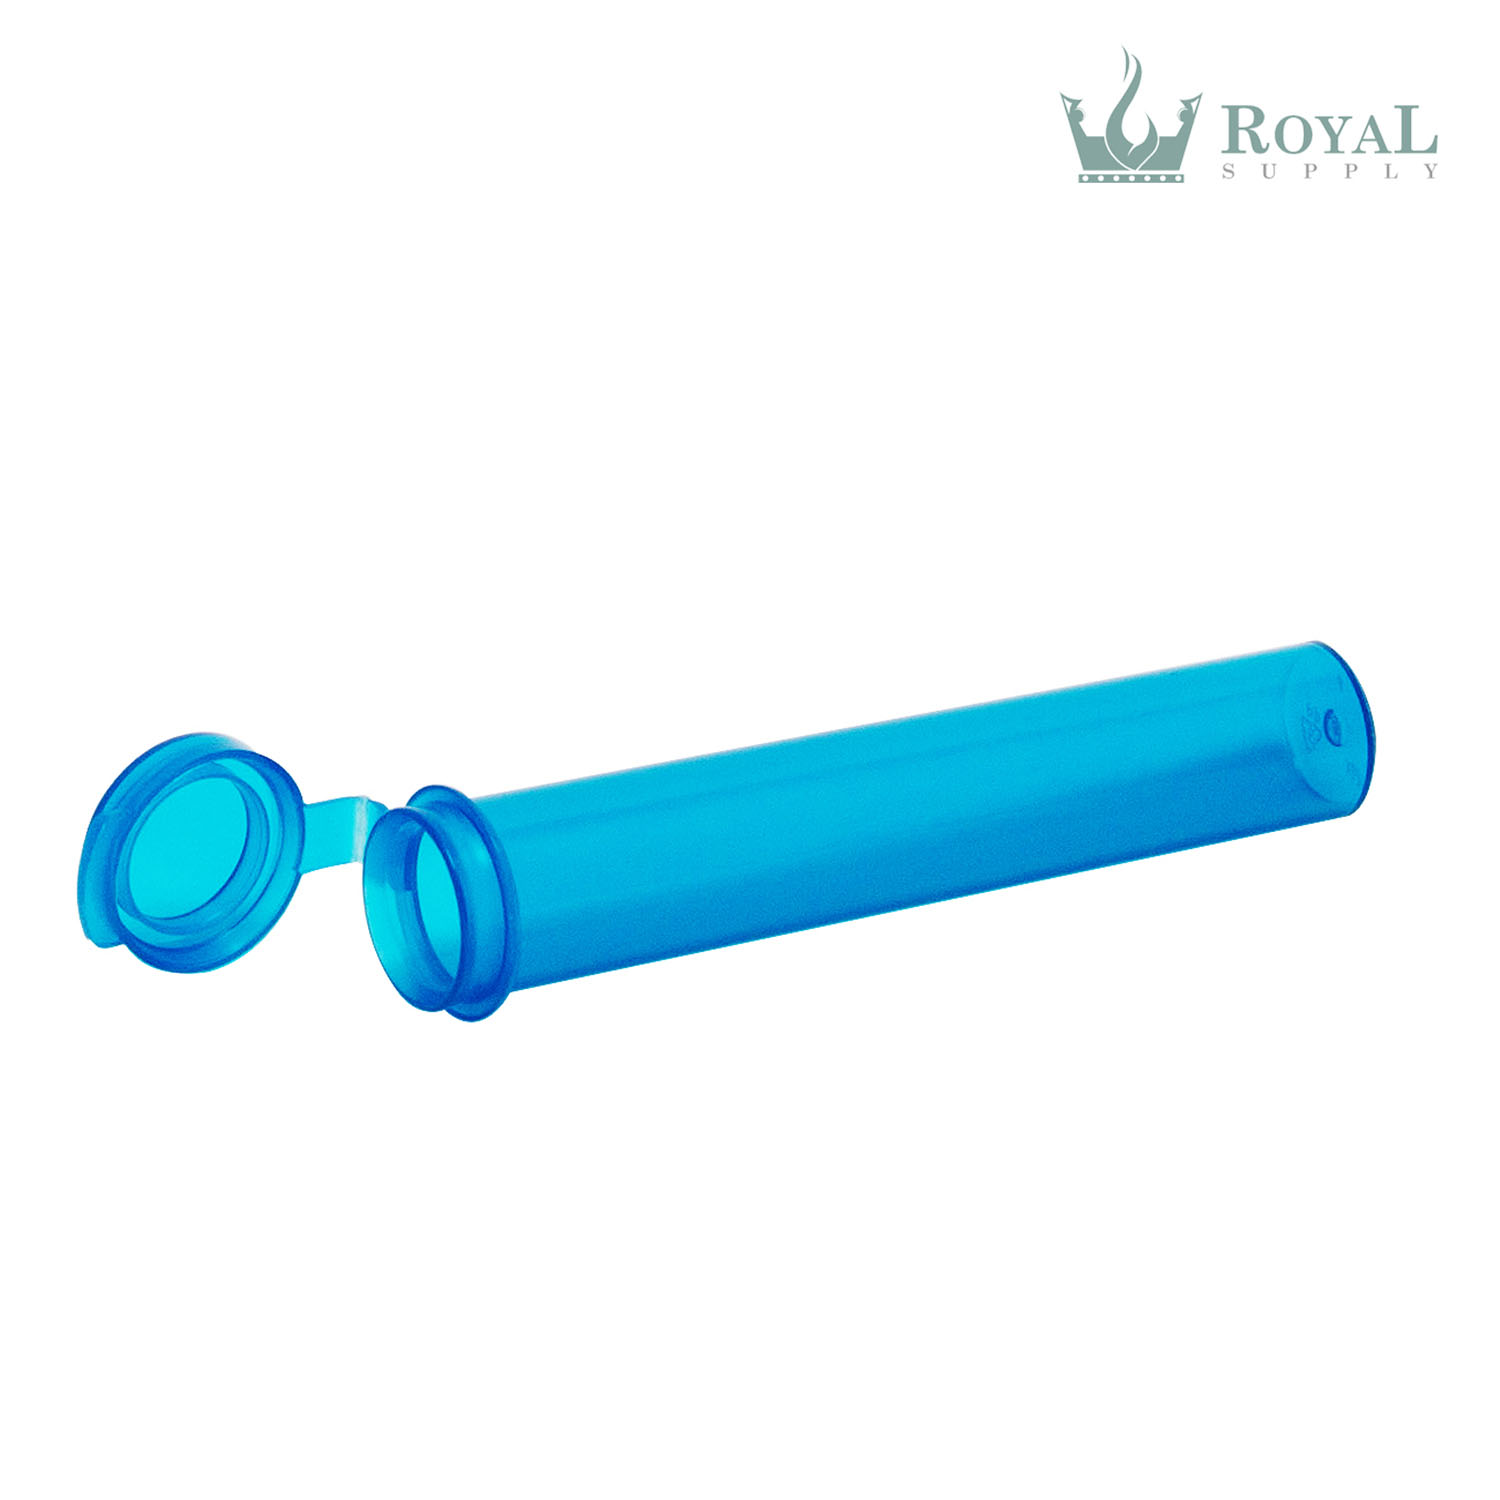 90 mm Translucent Plastic Joint Tube